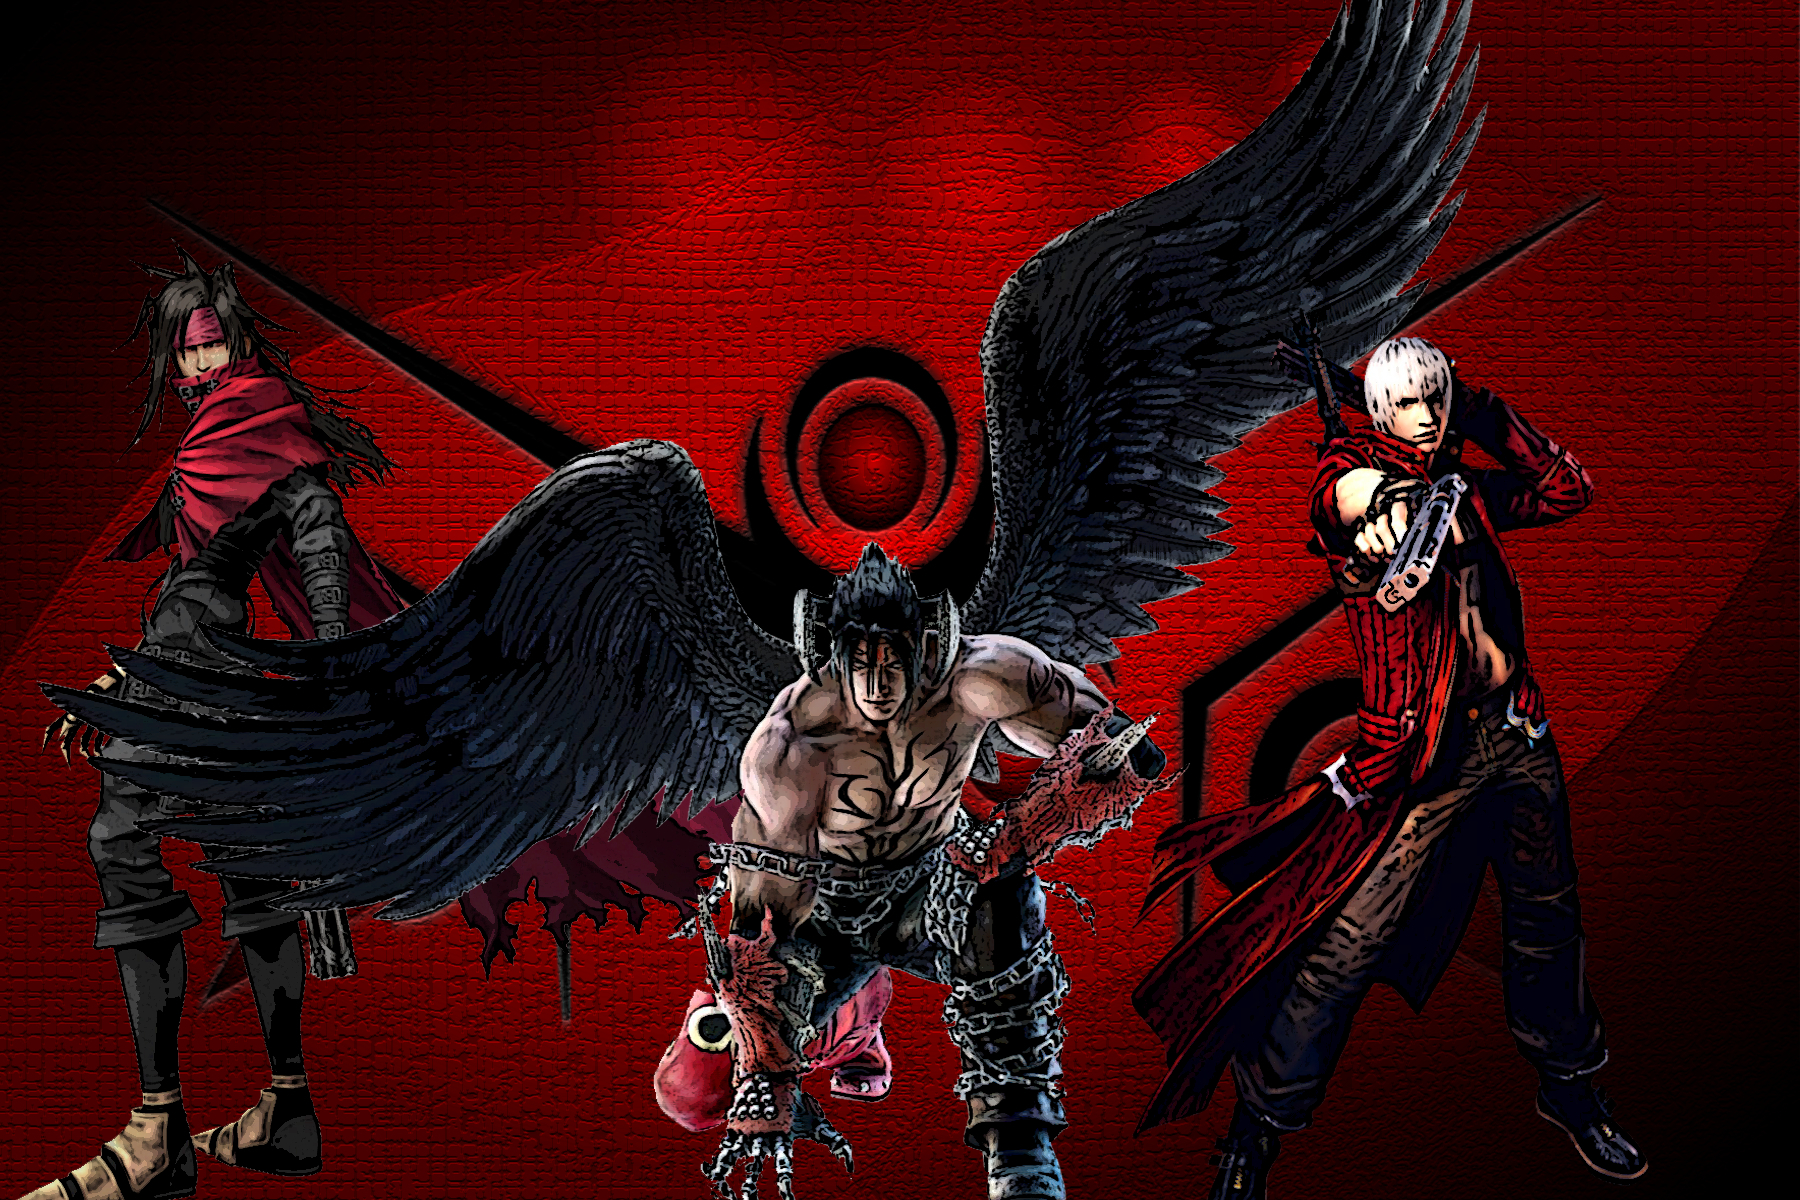 Jin devil May cry HD Wallpaper